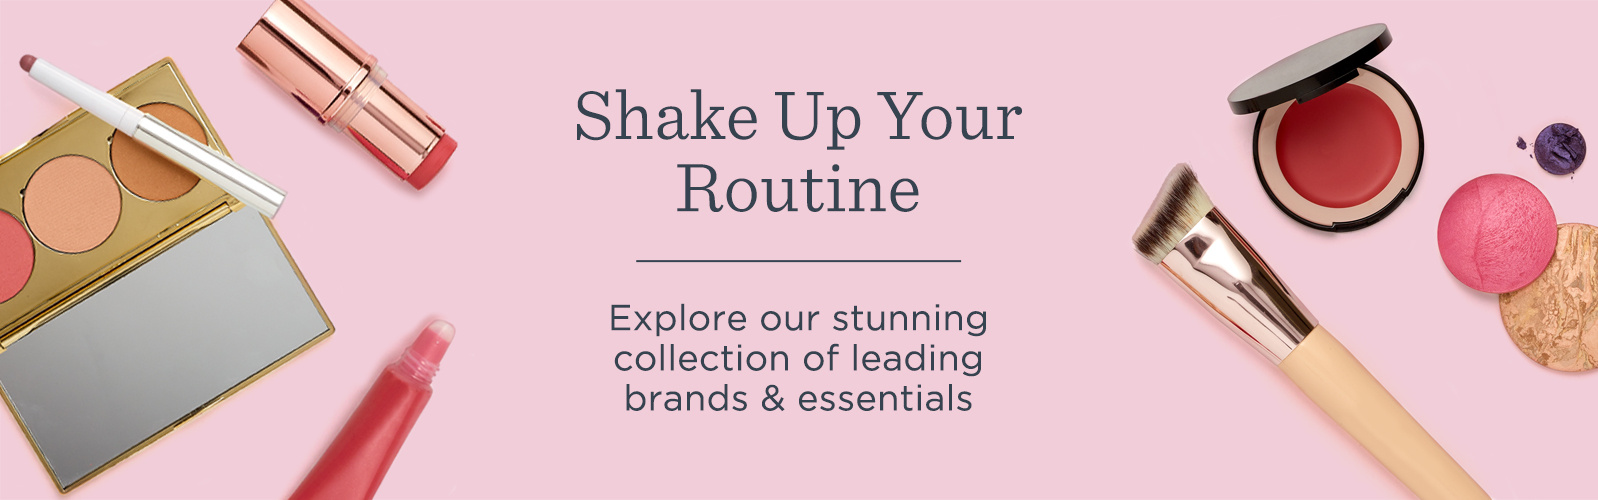 Shake Up Your Routine - Explore our stunning collection of leading brands & essentials